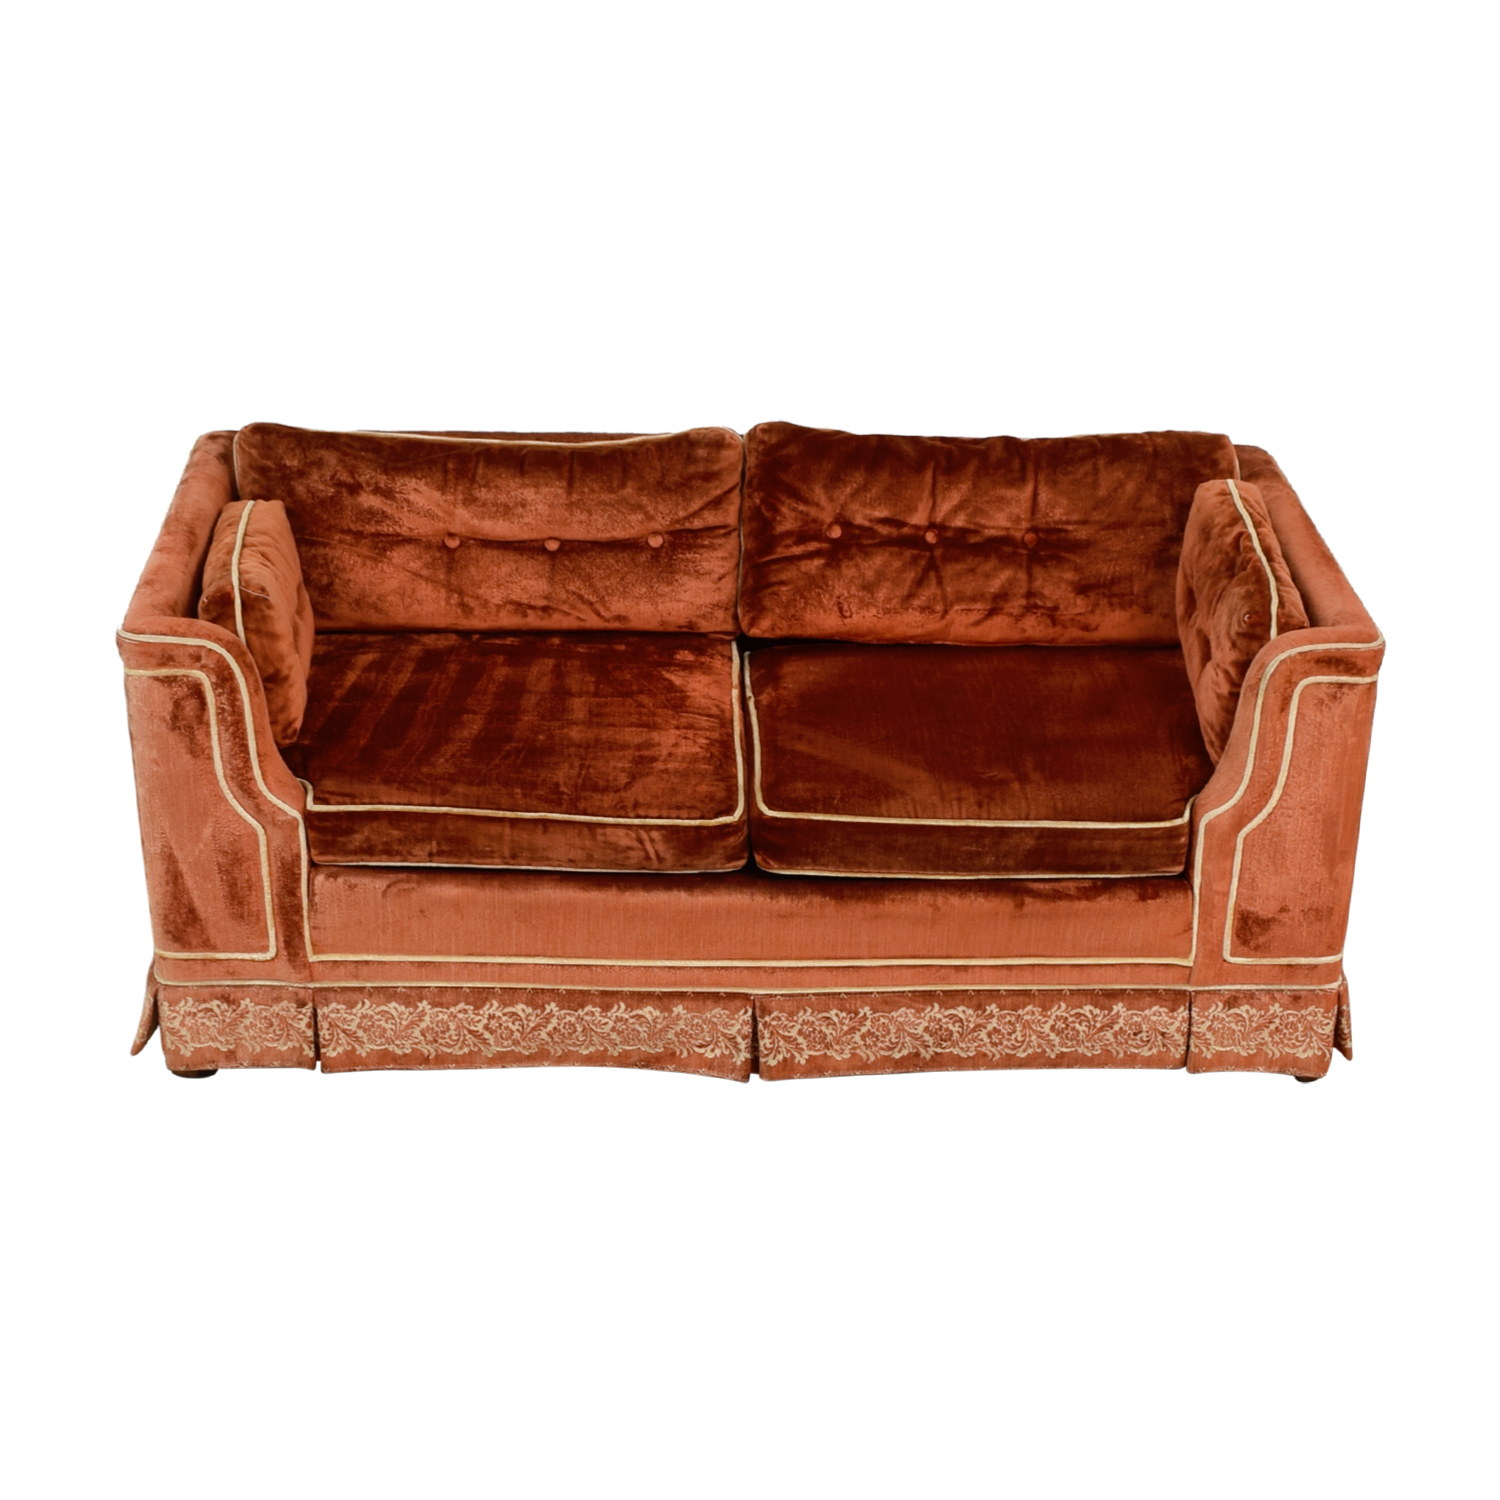 Orange with Beige Embroidered Trim Loveseat / Sofas